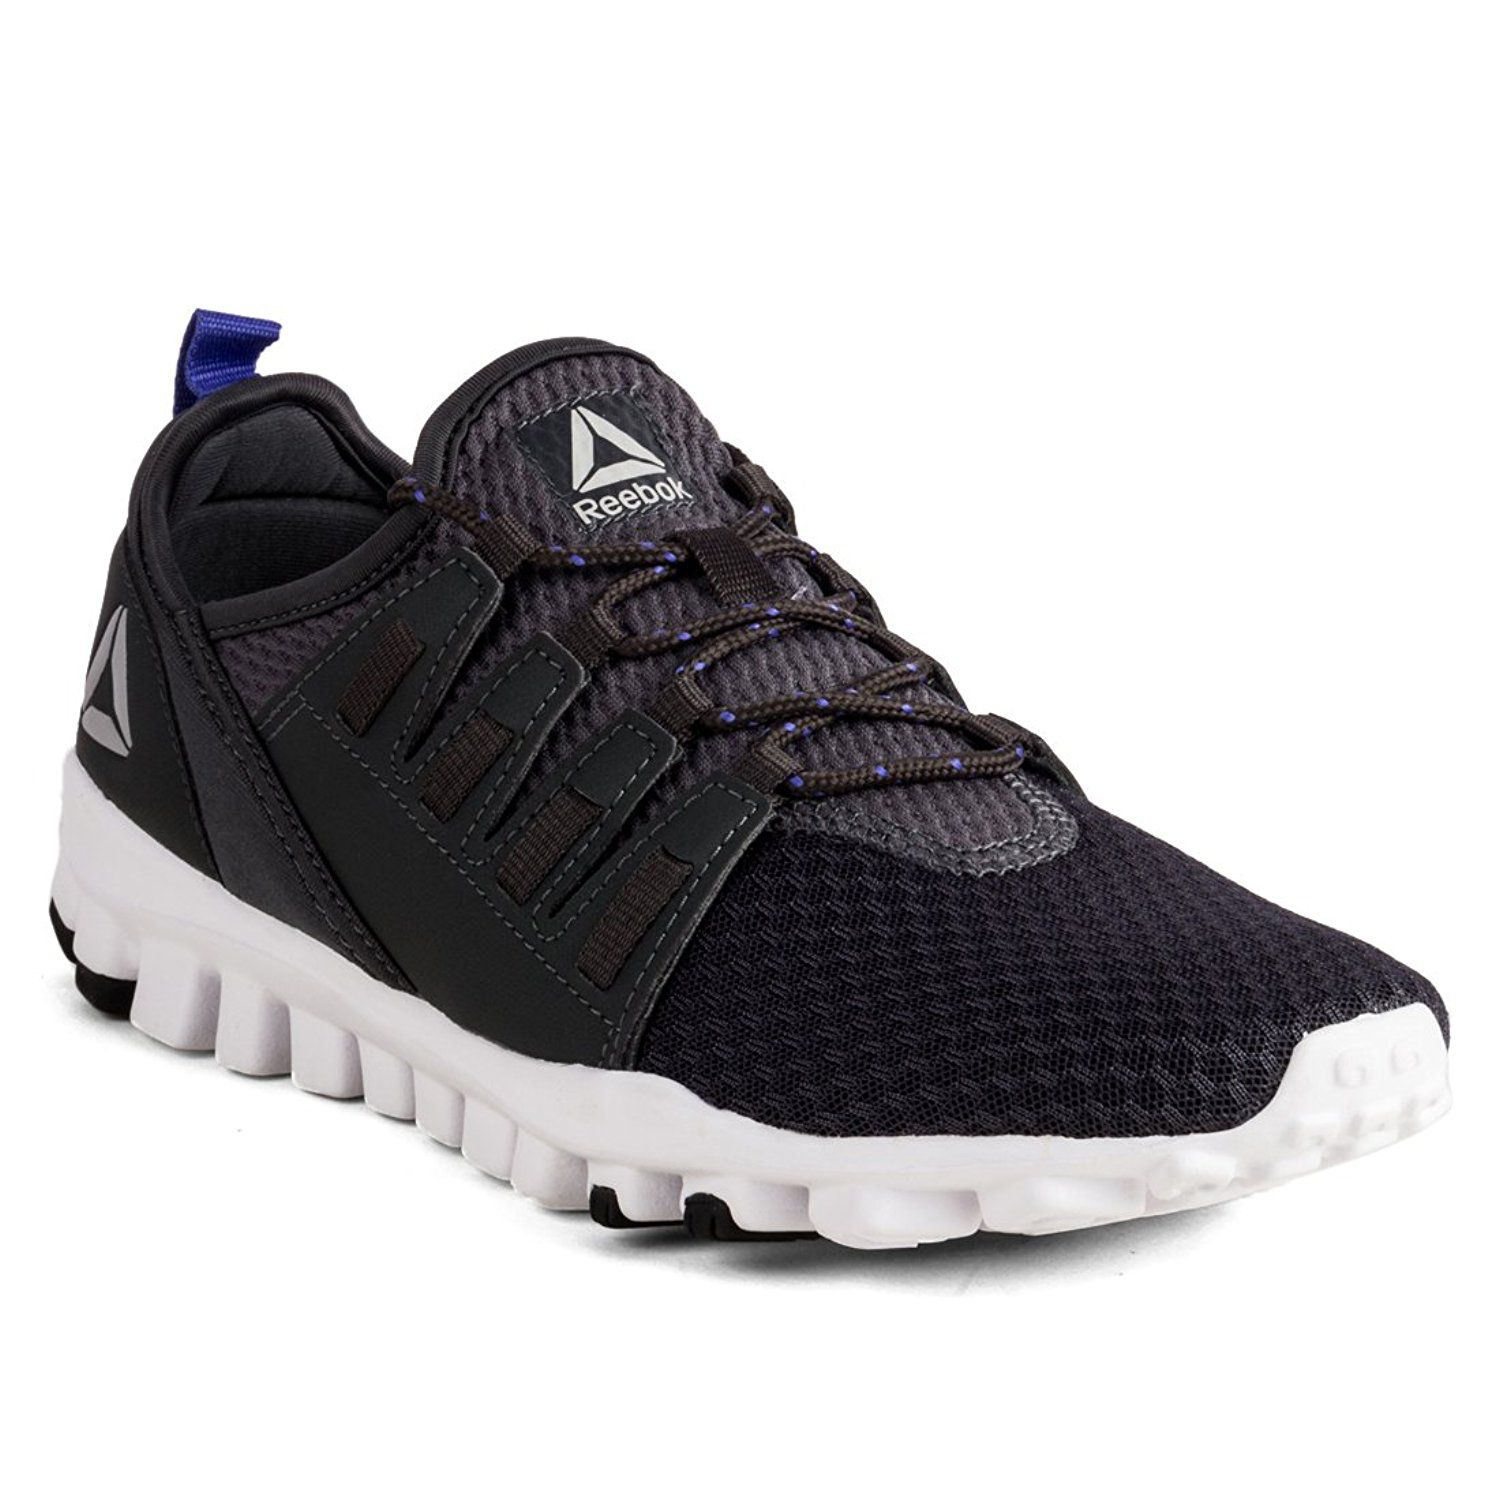 f8a13b8f0d33 Reebok CN6188 Gray Running Shoes - Buy Reebok CN6188 Gray Running Shoes  Online at Best Prices in India on Snapdeal